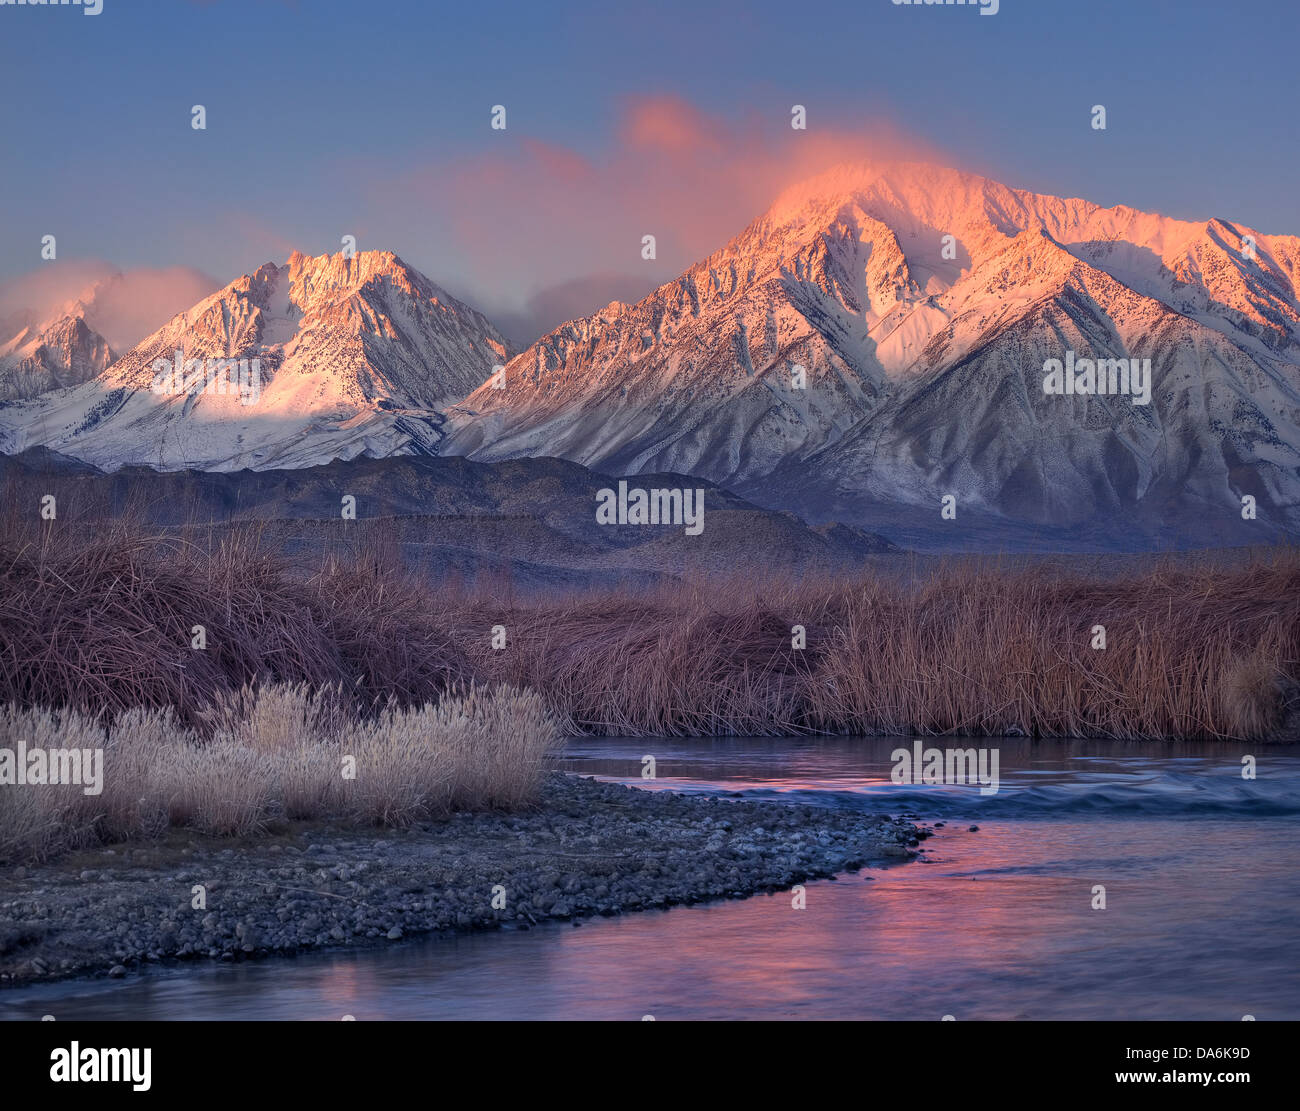 USA, United States, America, California, Bishop, Mount Tom, Sierras, Eastern Sierras, mountain, mountain peaks, Stock Photo